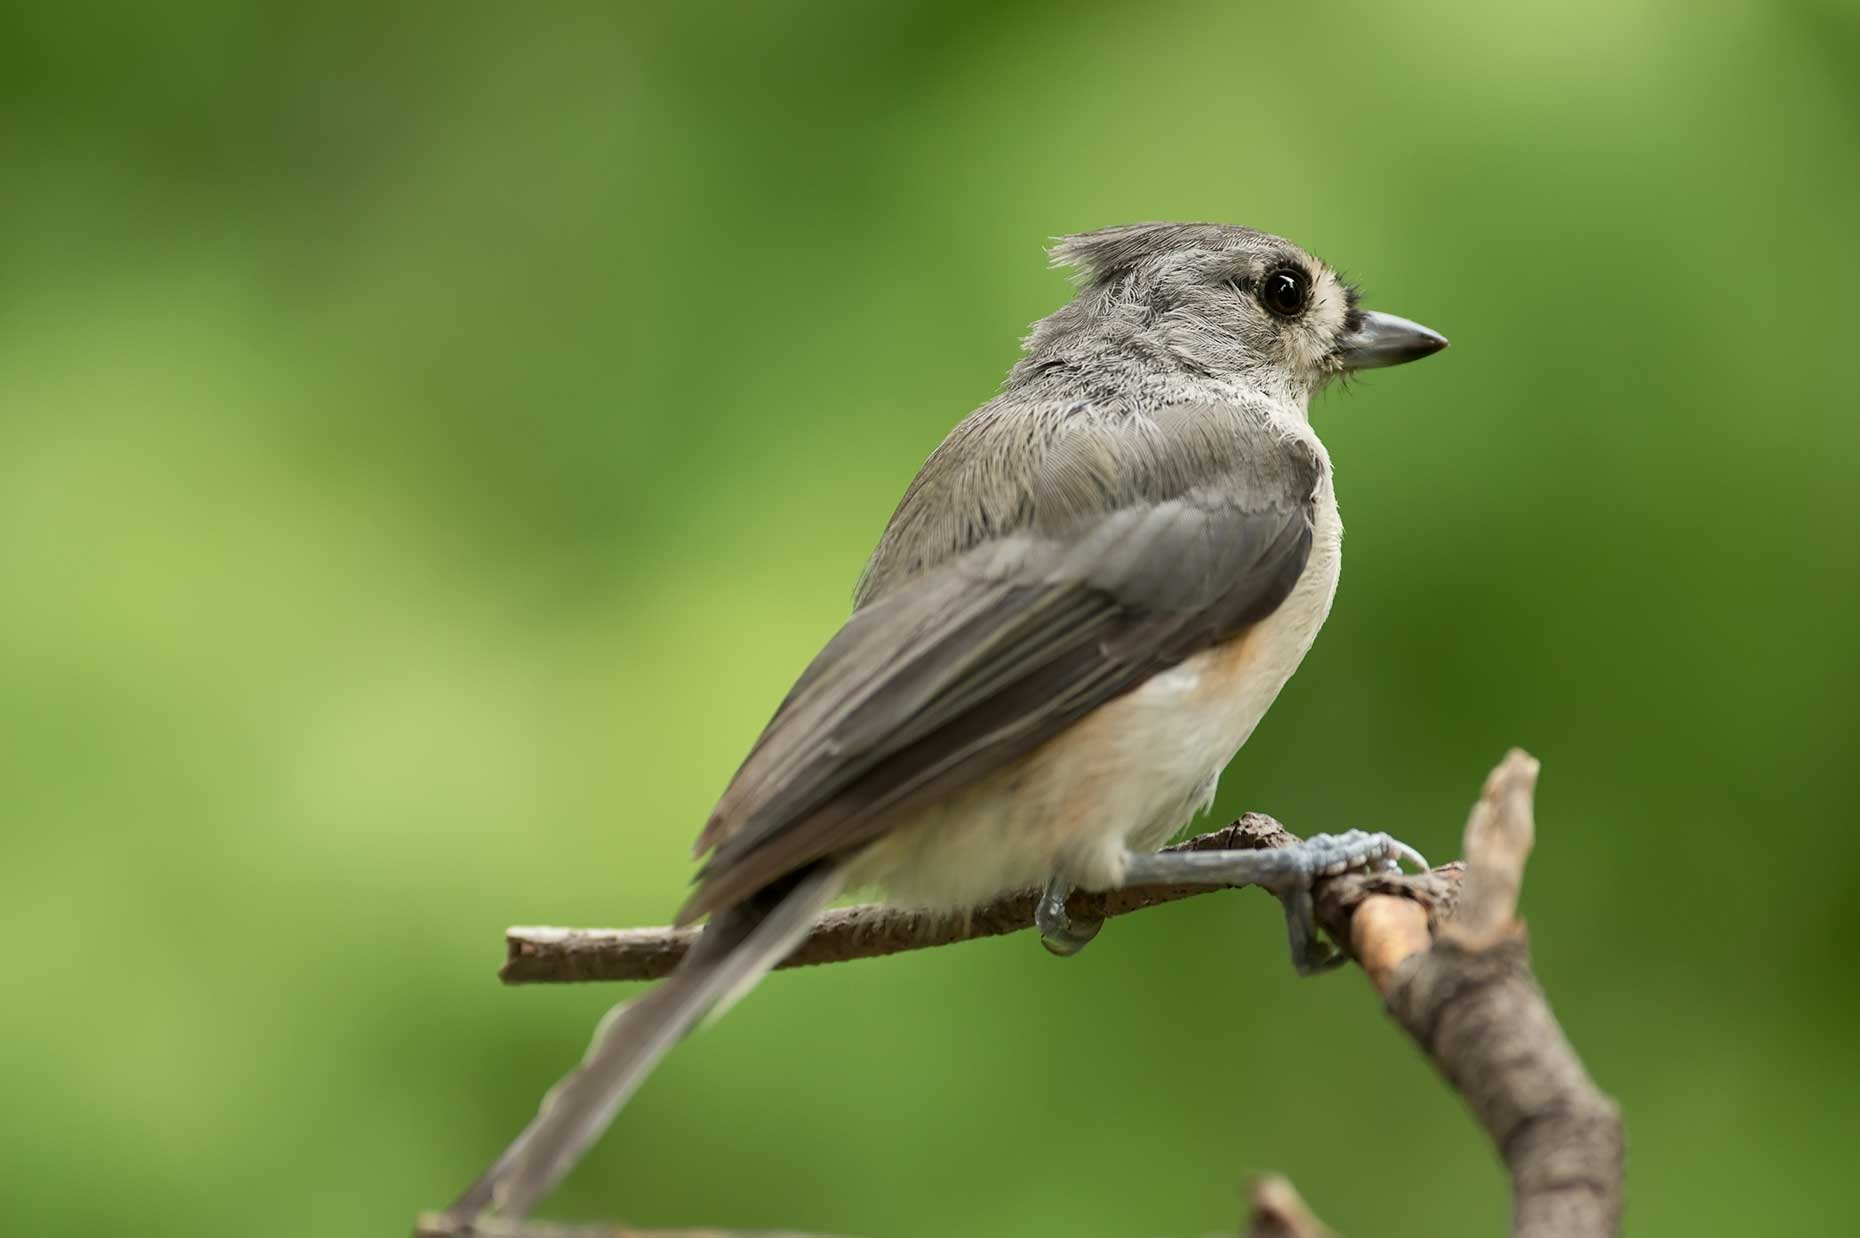 FritzImages | Travel and Outdoor Digital Images | image name = FI 20140731 957 NY Summer Birds